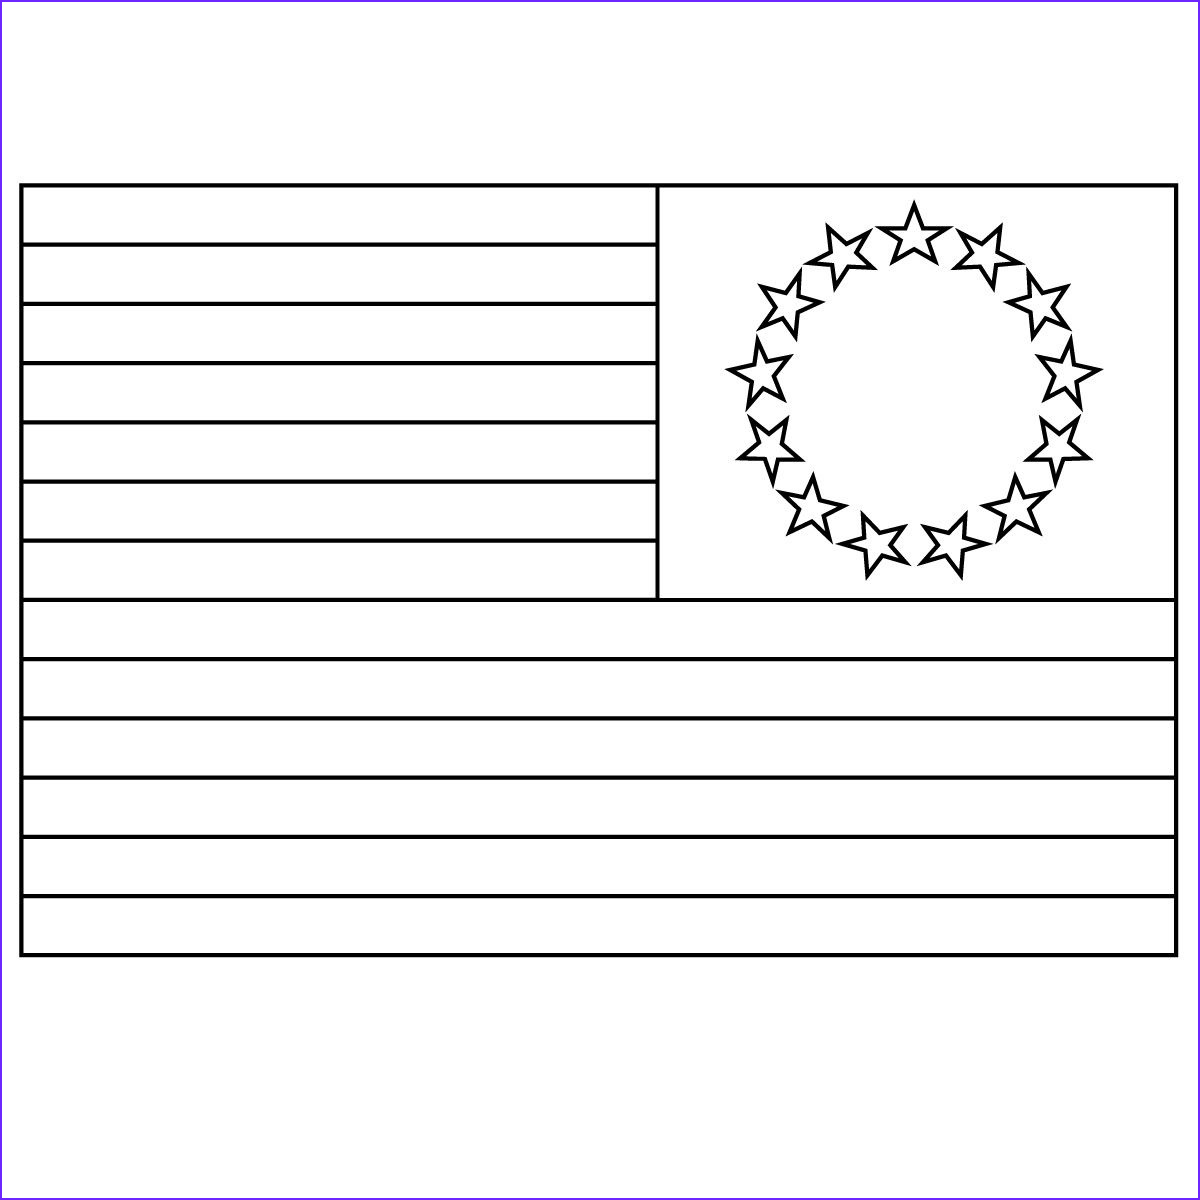 American Flag Coloring Page Elegant Stock Awesome American Flag Coloring Sheet Special Picture